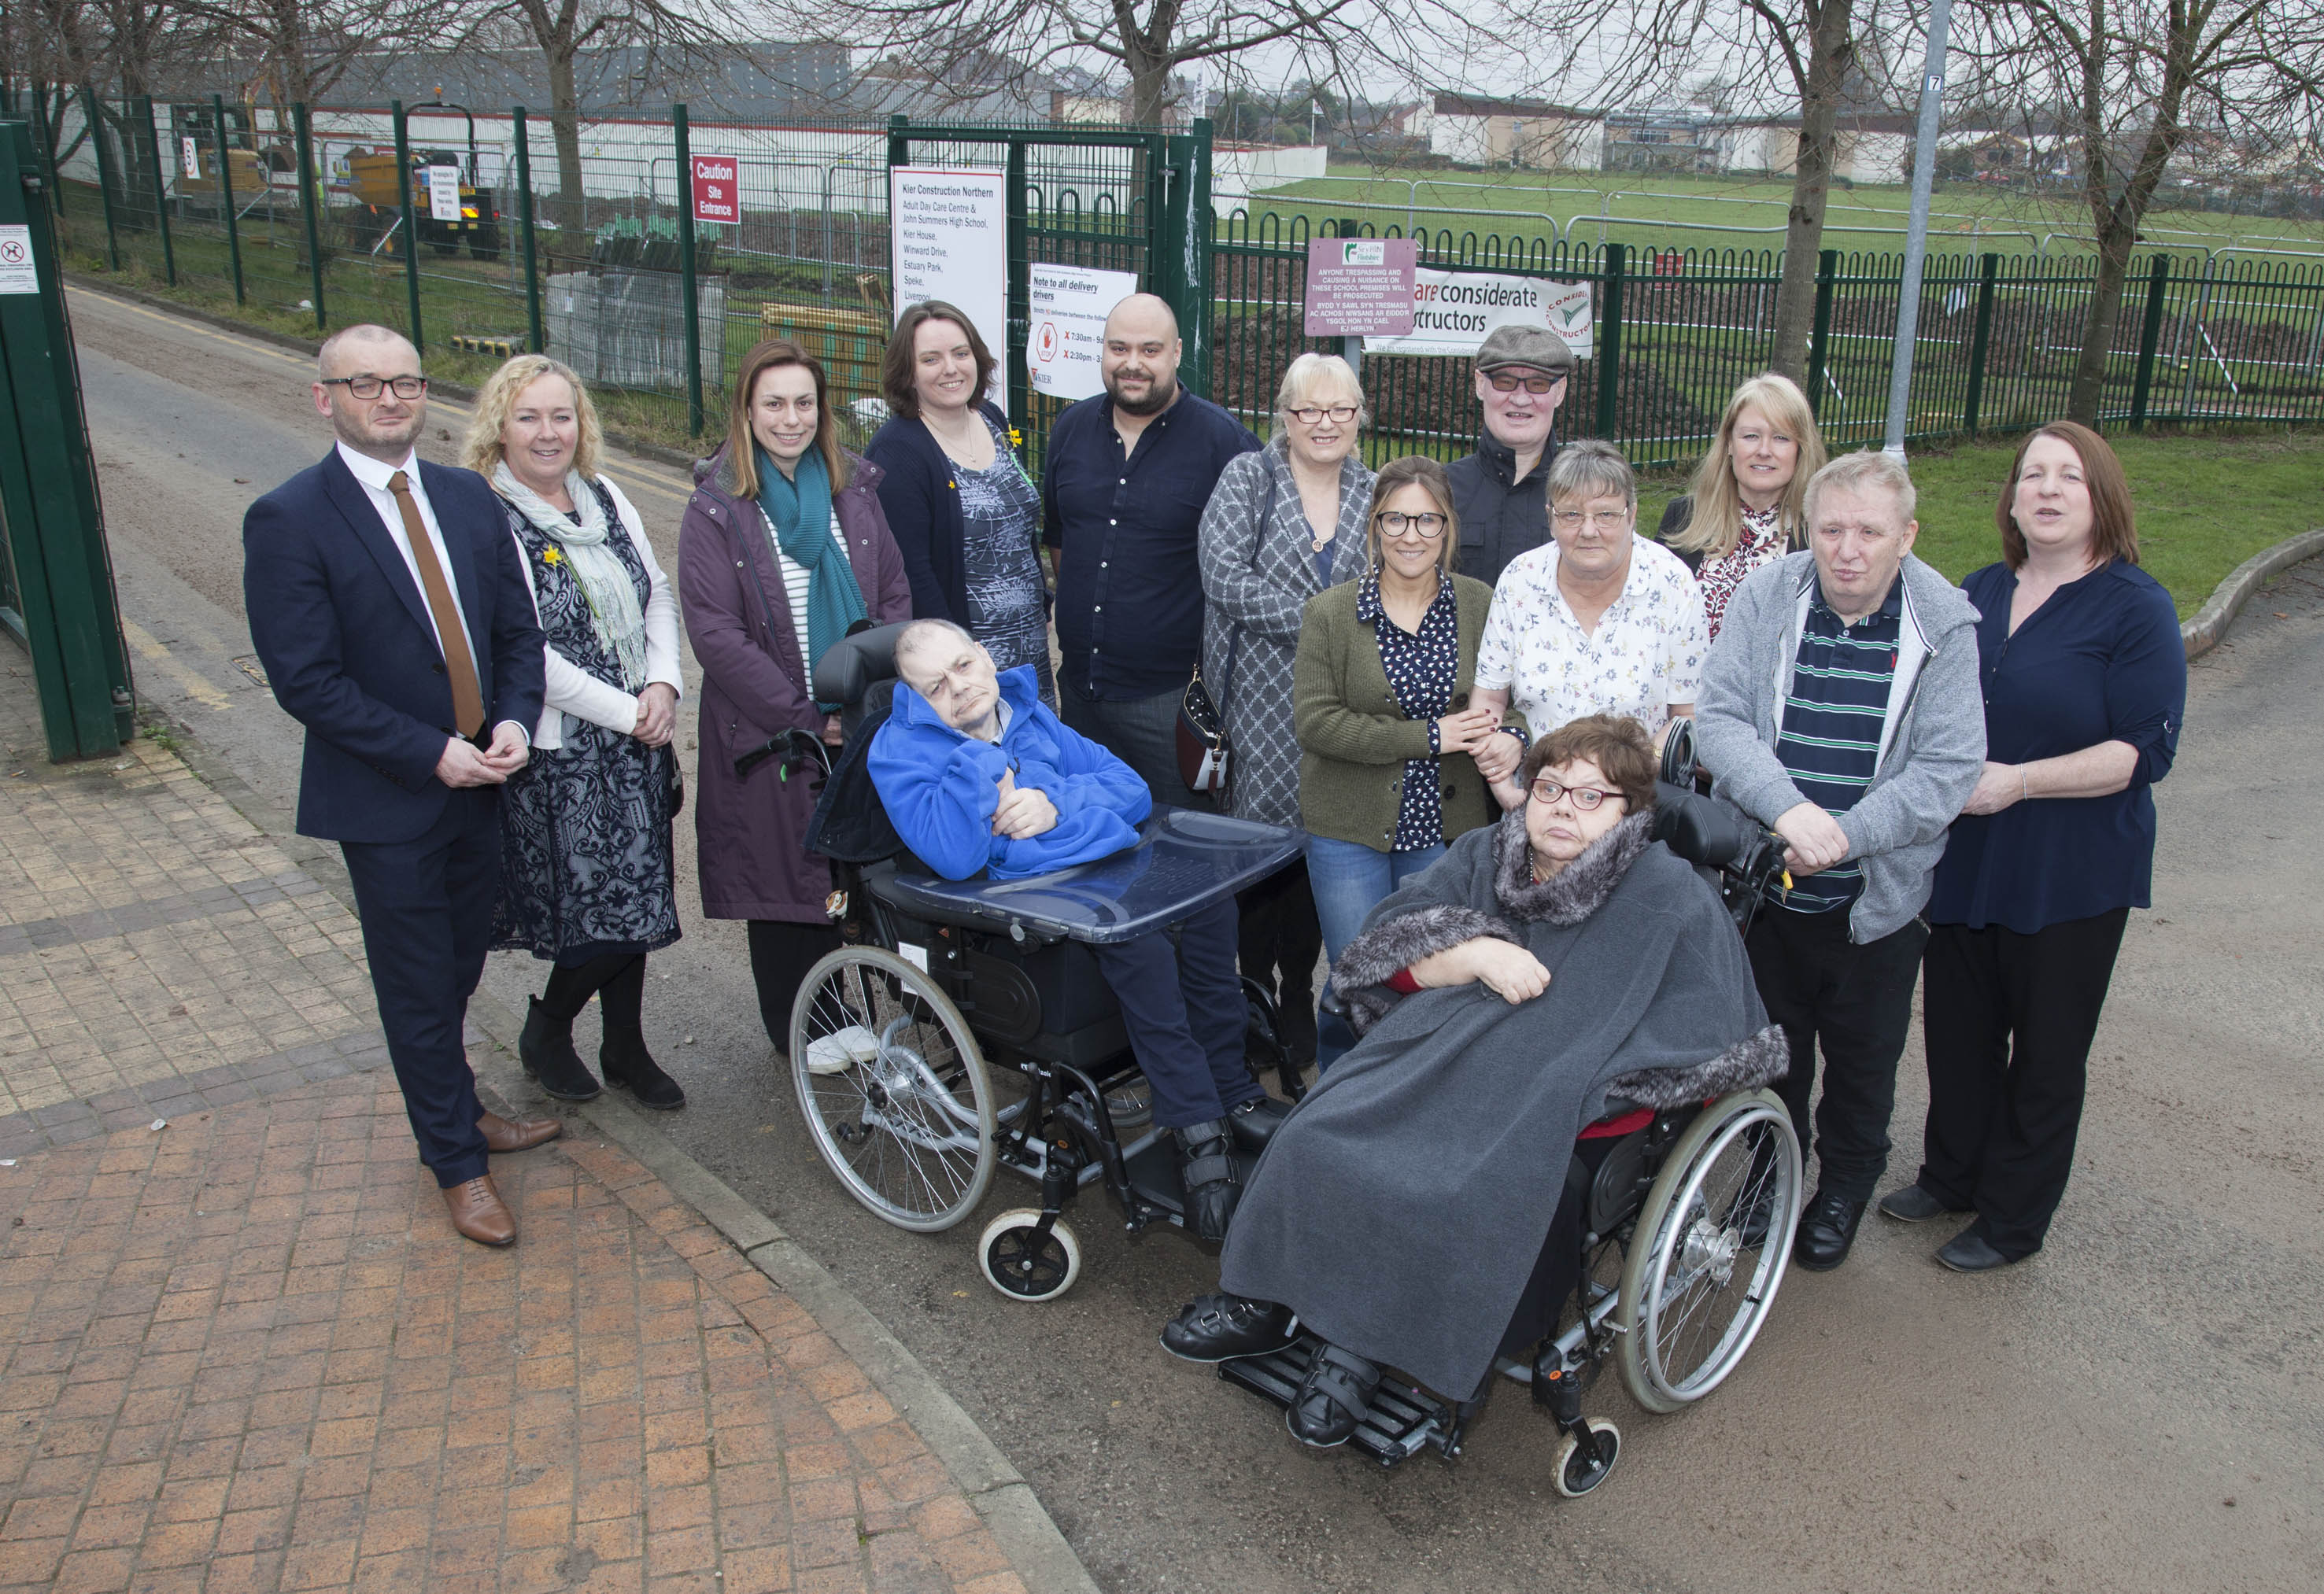 Flintshire County Council, Hft and Service users close to the construction site where the new centre is being built